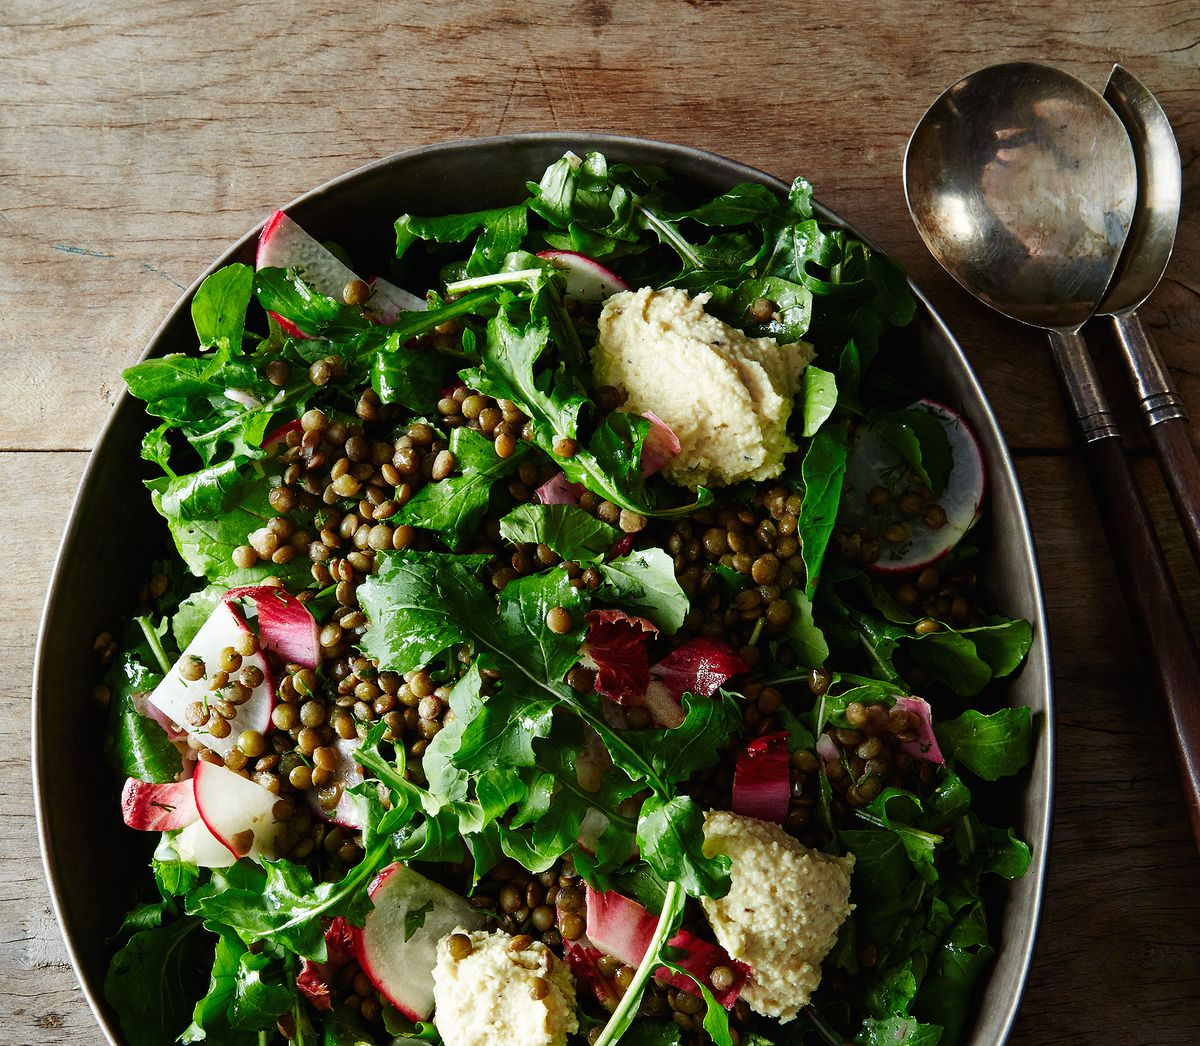 How to Make Vegan French Lentil Salad with Cashew Cream